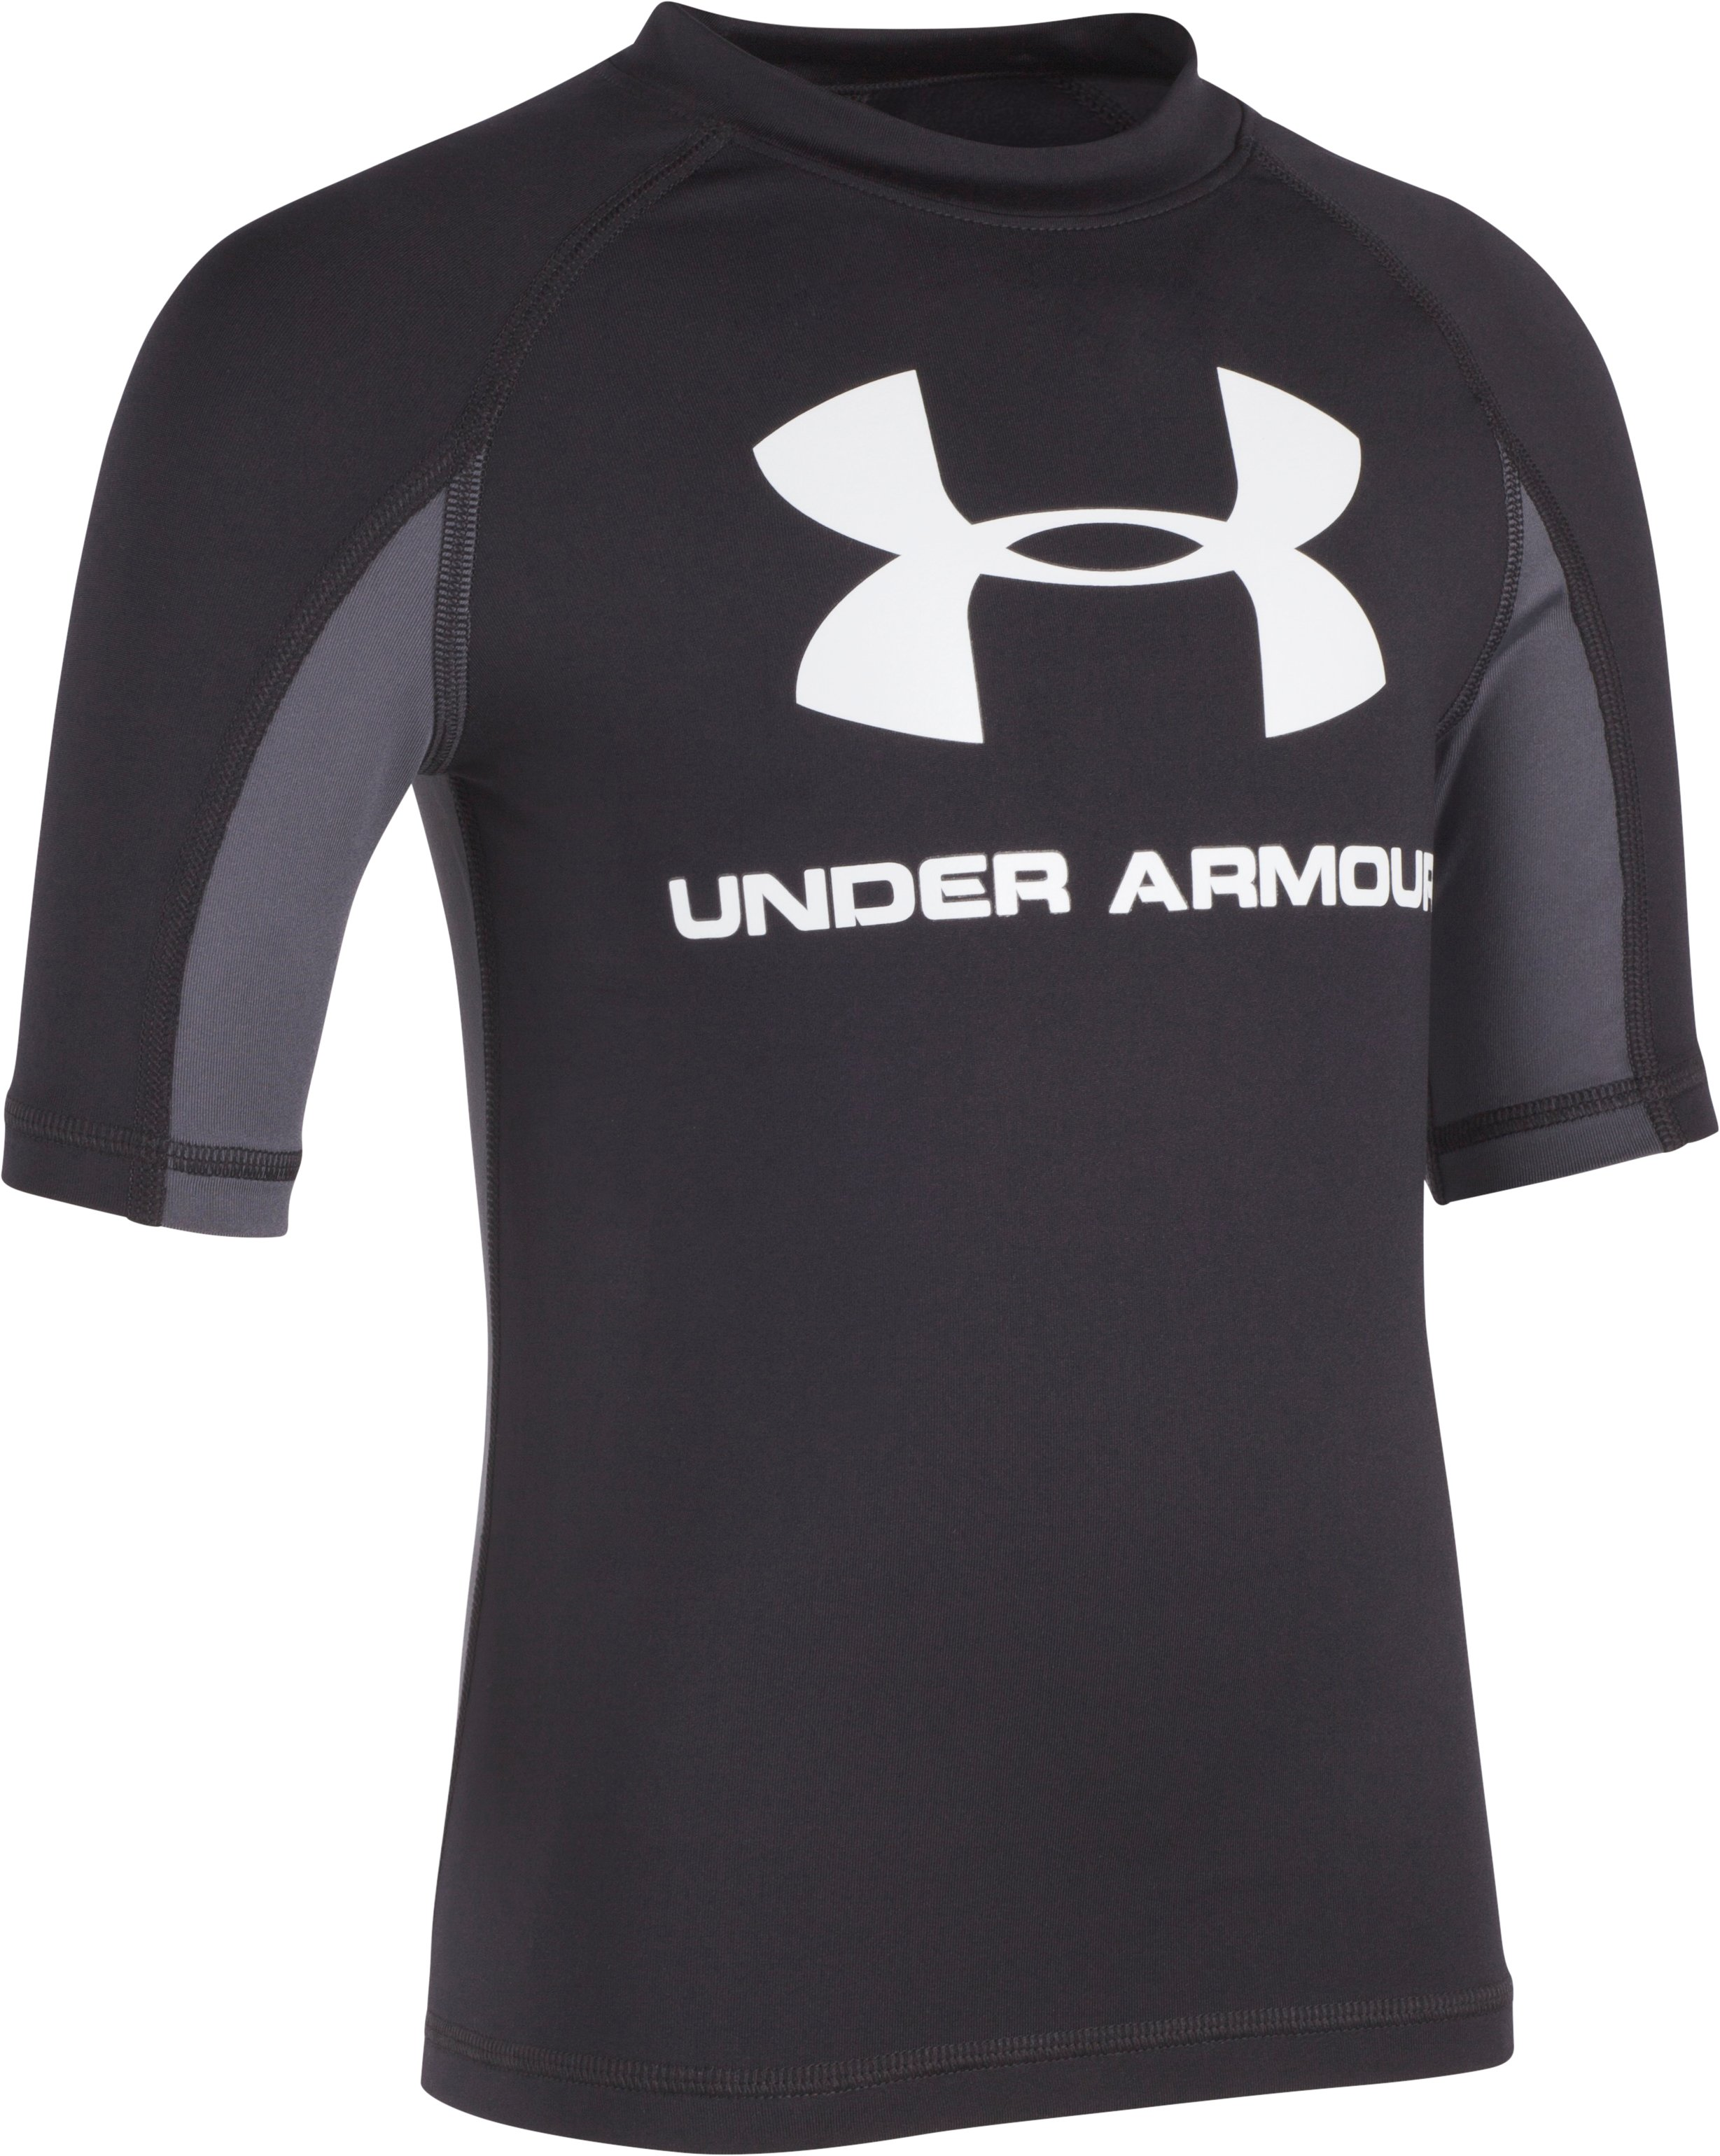 Boys' Pre-School UA Compression Rashguard Short Sleeve Shirt, Black , Laydown